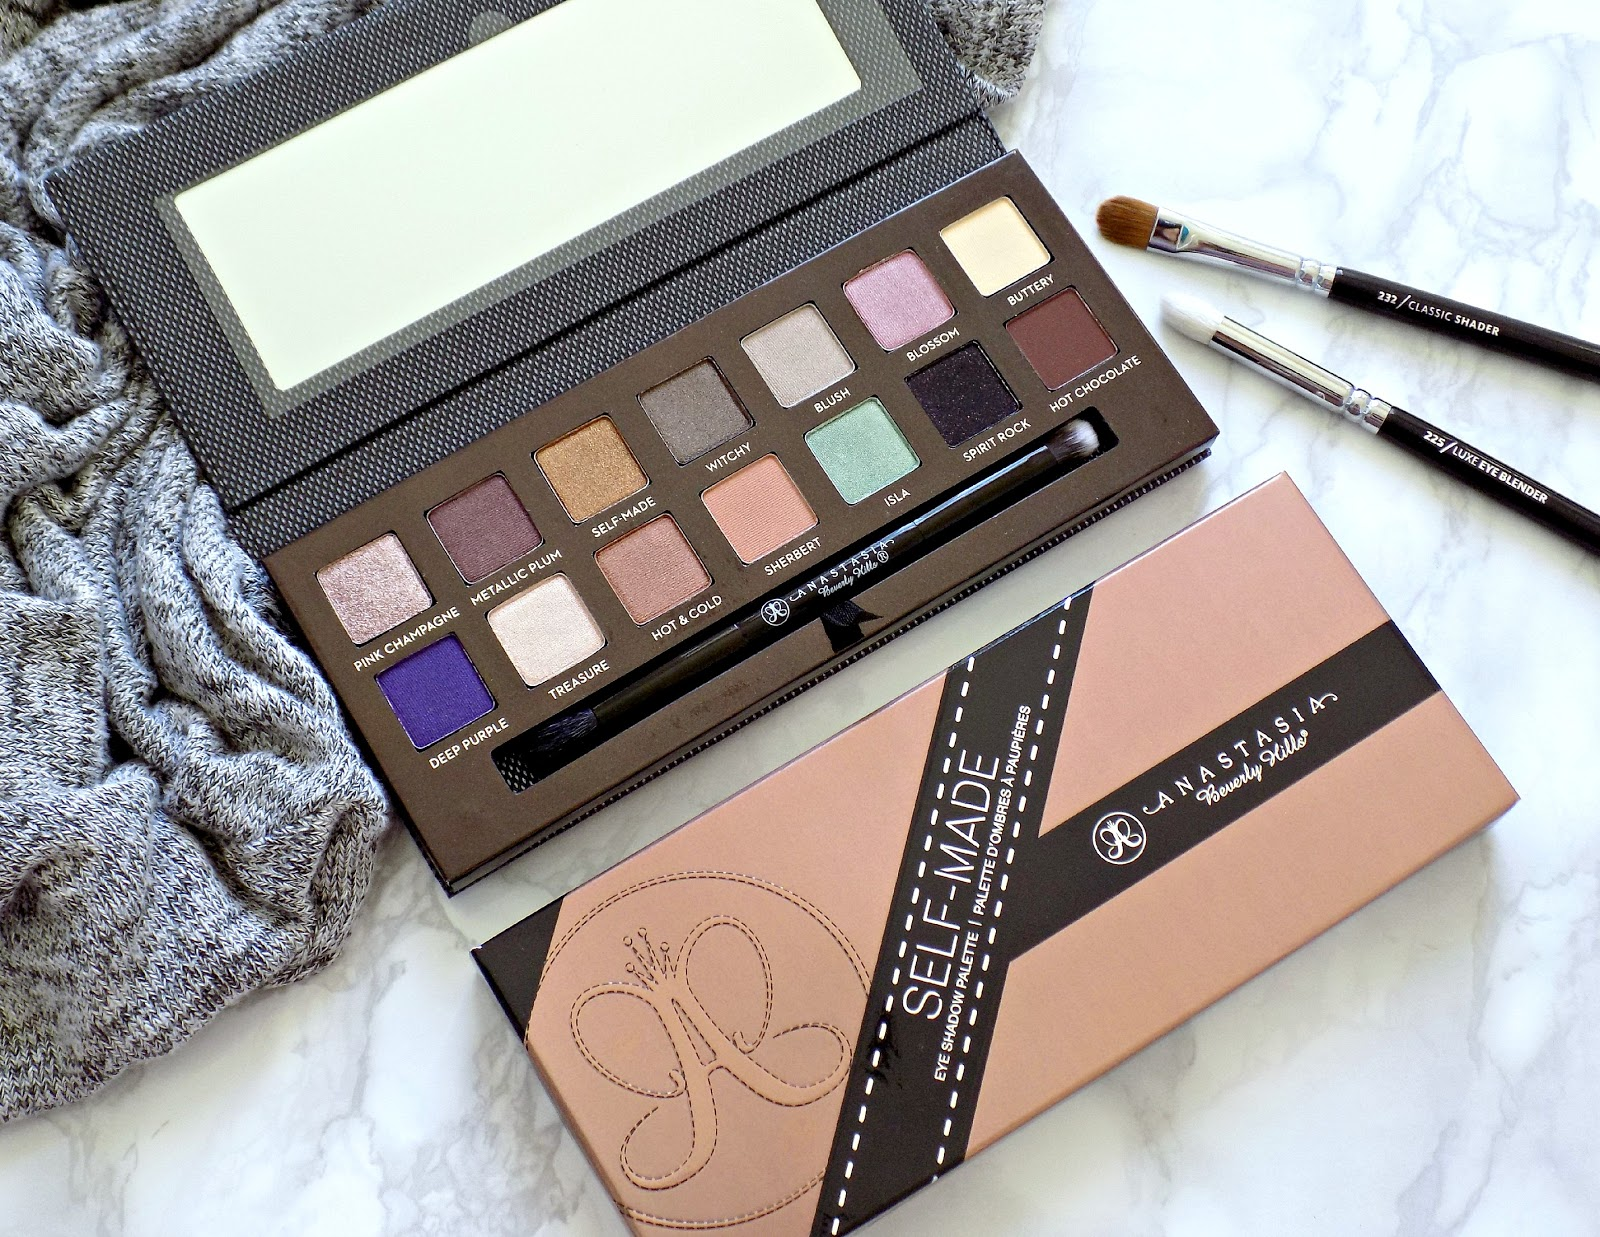 Anastasia Beverly Hills 'Self-Made' palette